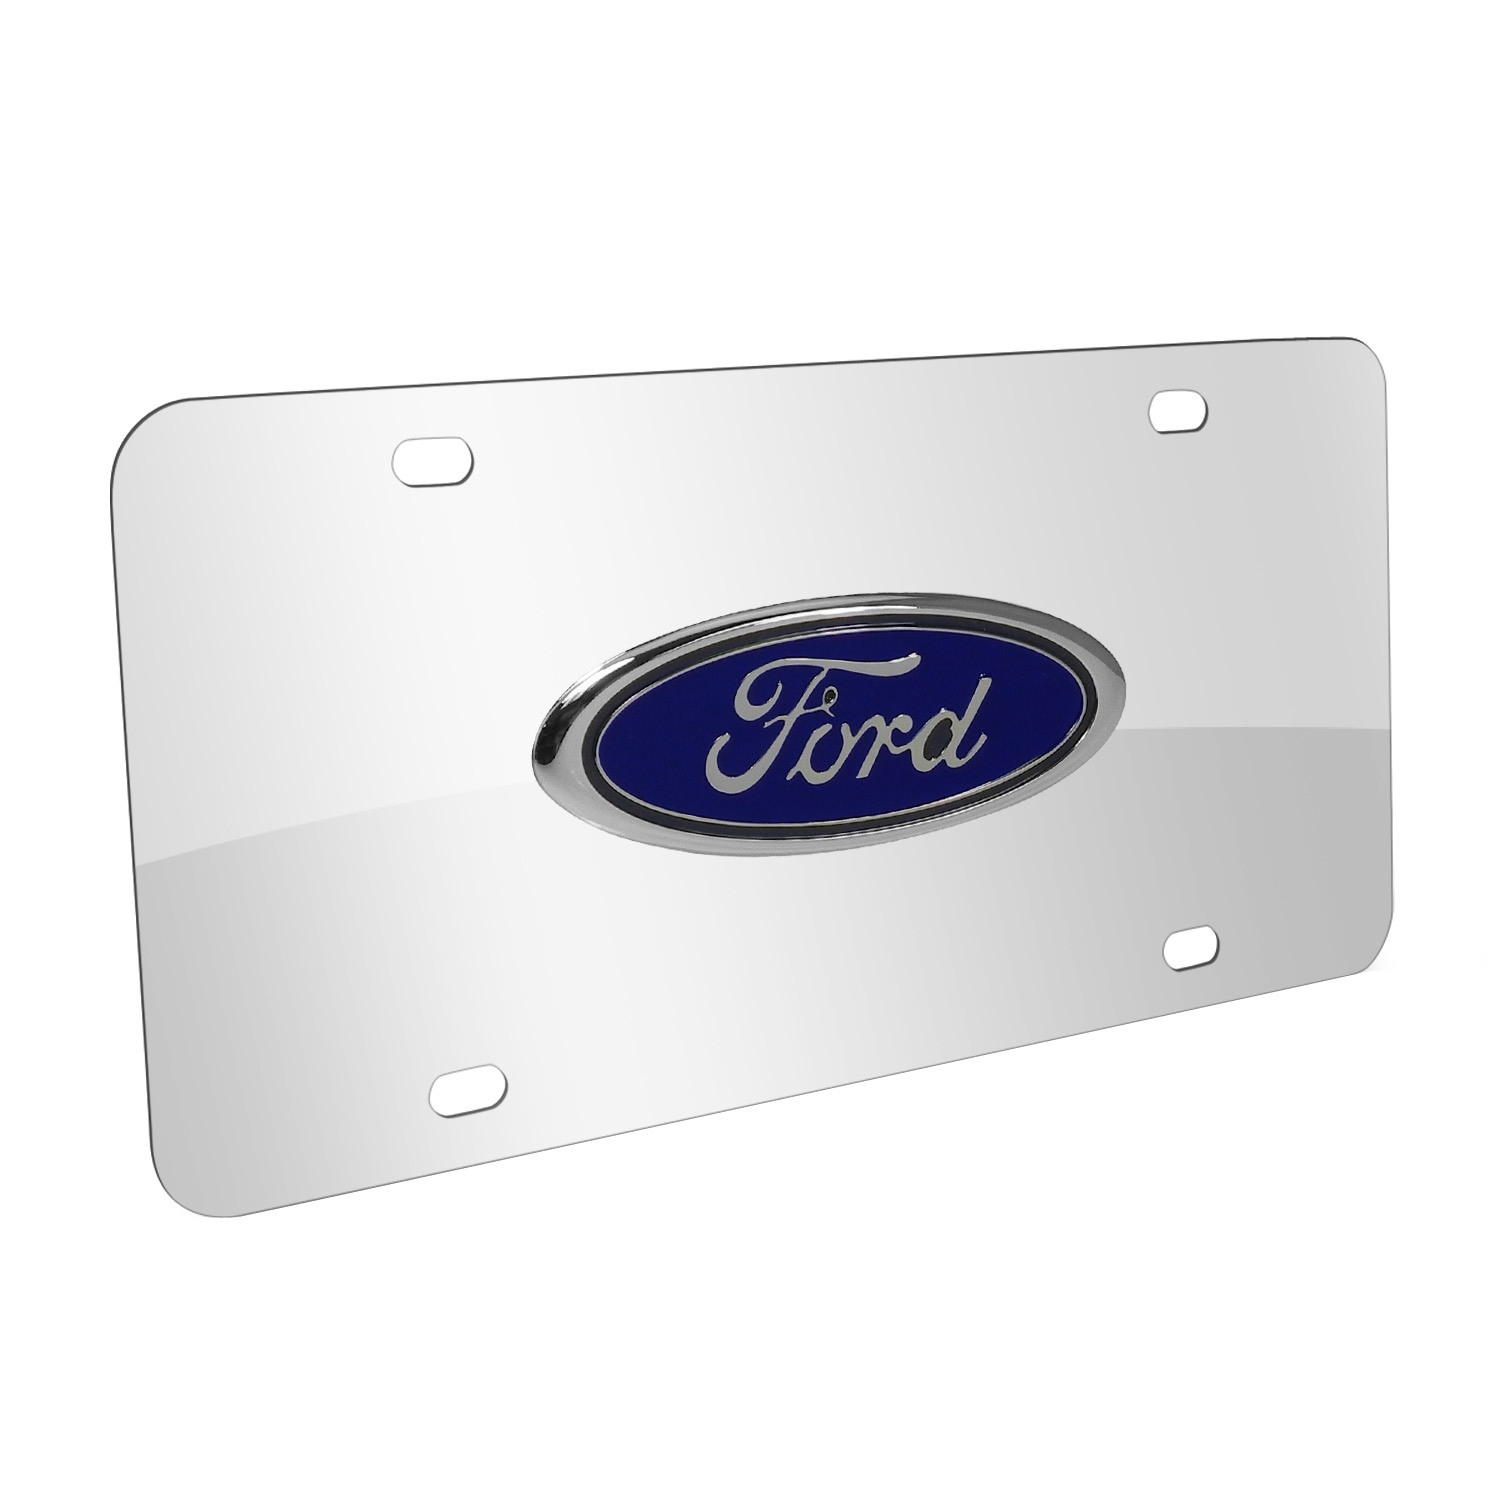 Ford 3D Logo Chrome Stainless Steel License Plate